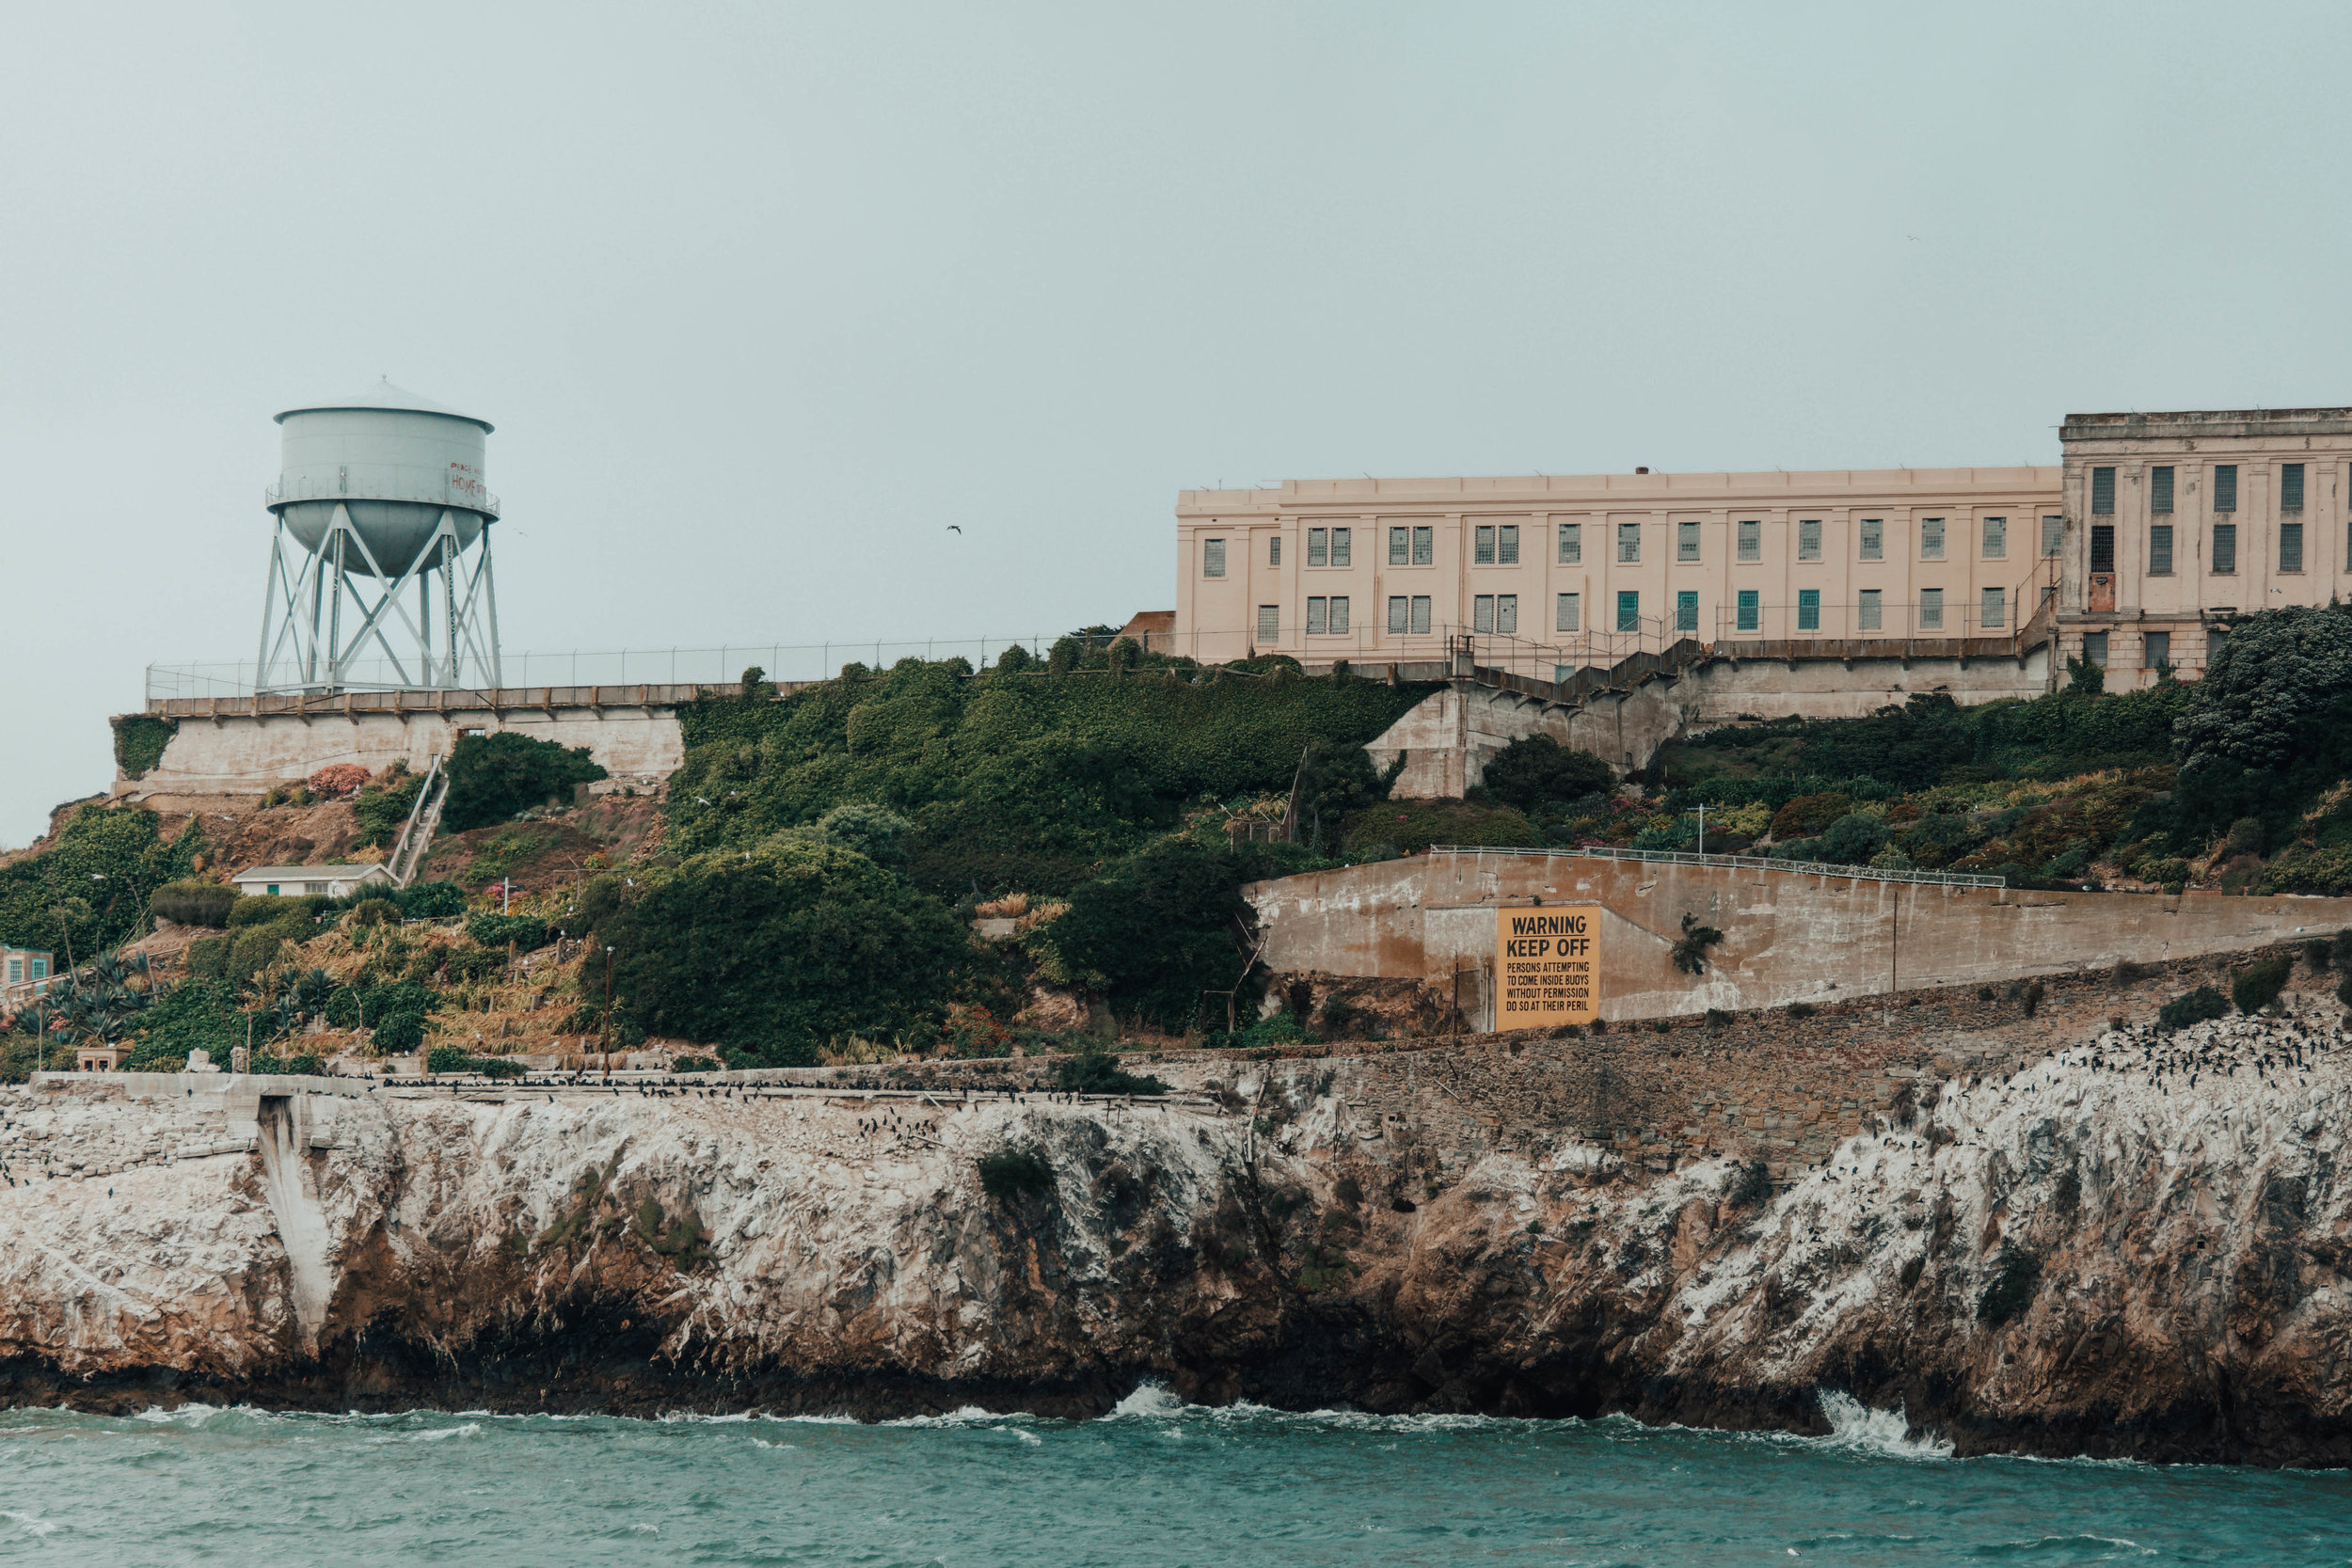 ESCAPE TO ALCATRAZ 5 REASONS TO VISIT THE FAMOUS PRISON 03.JPG